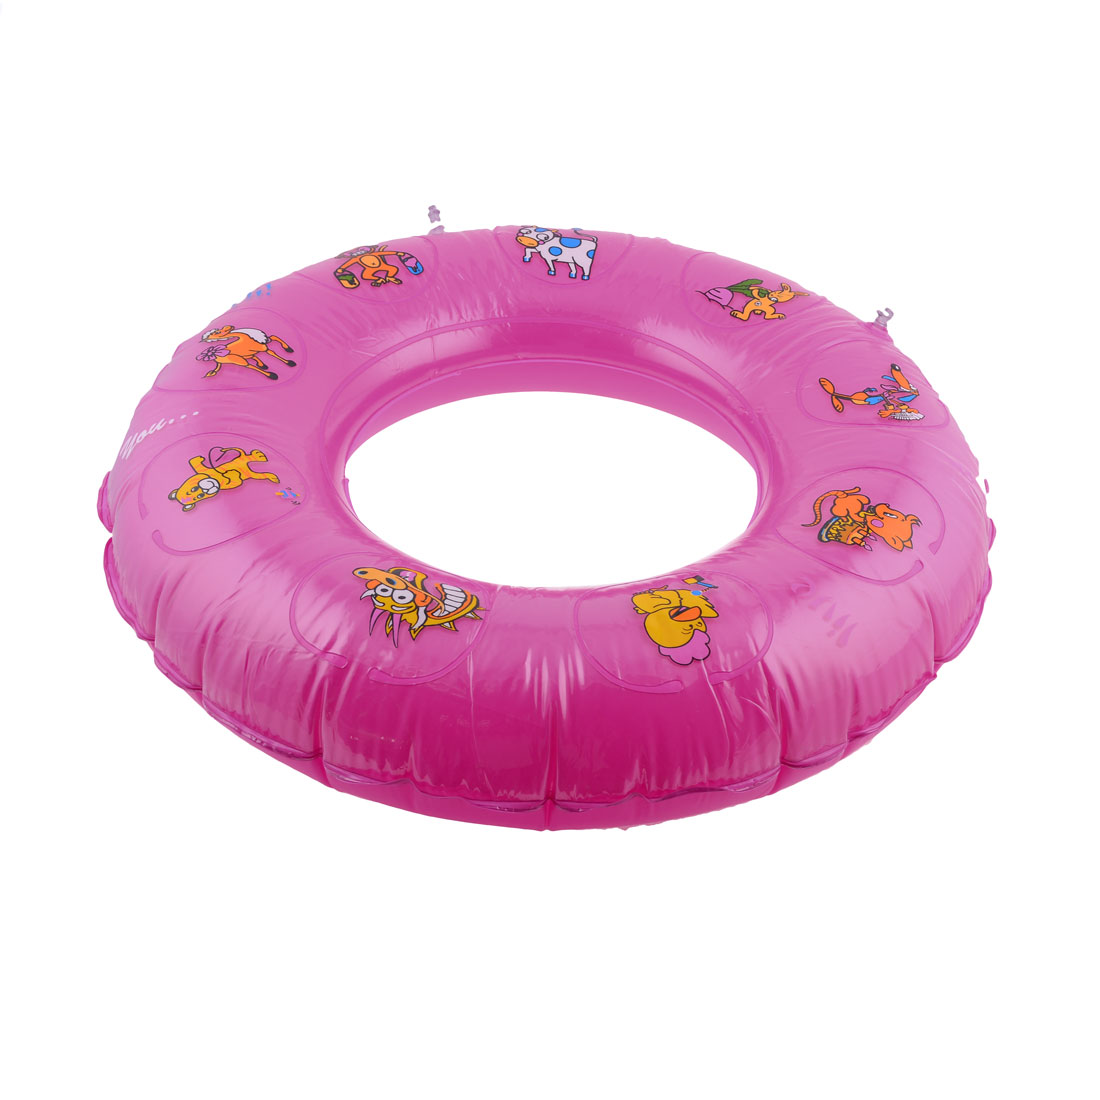 Fuchsia Round Animal Print PVC Inflatable Swim Ring for Children